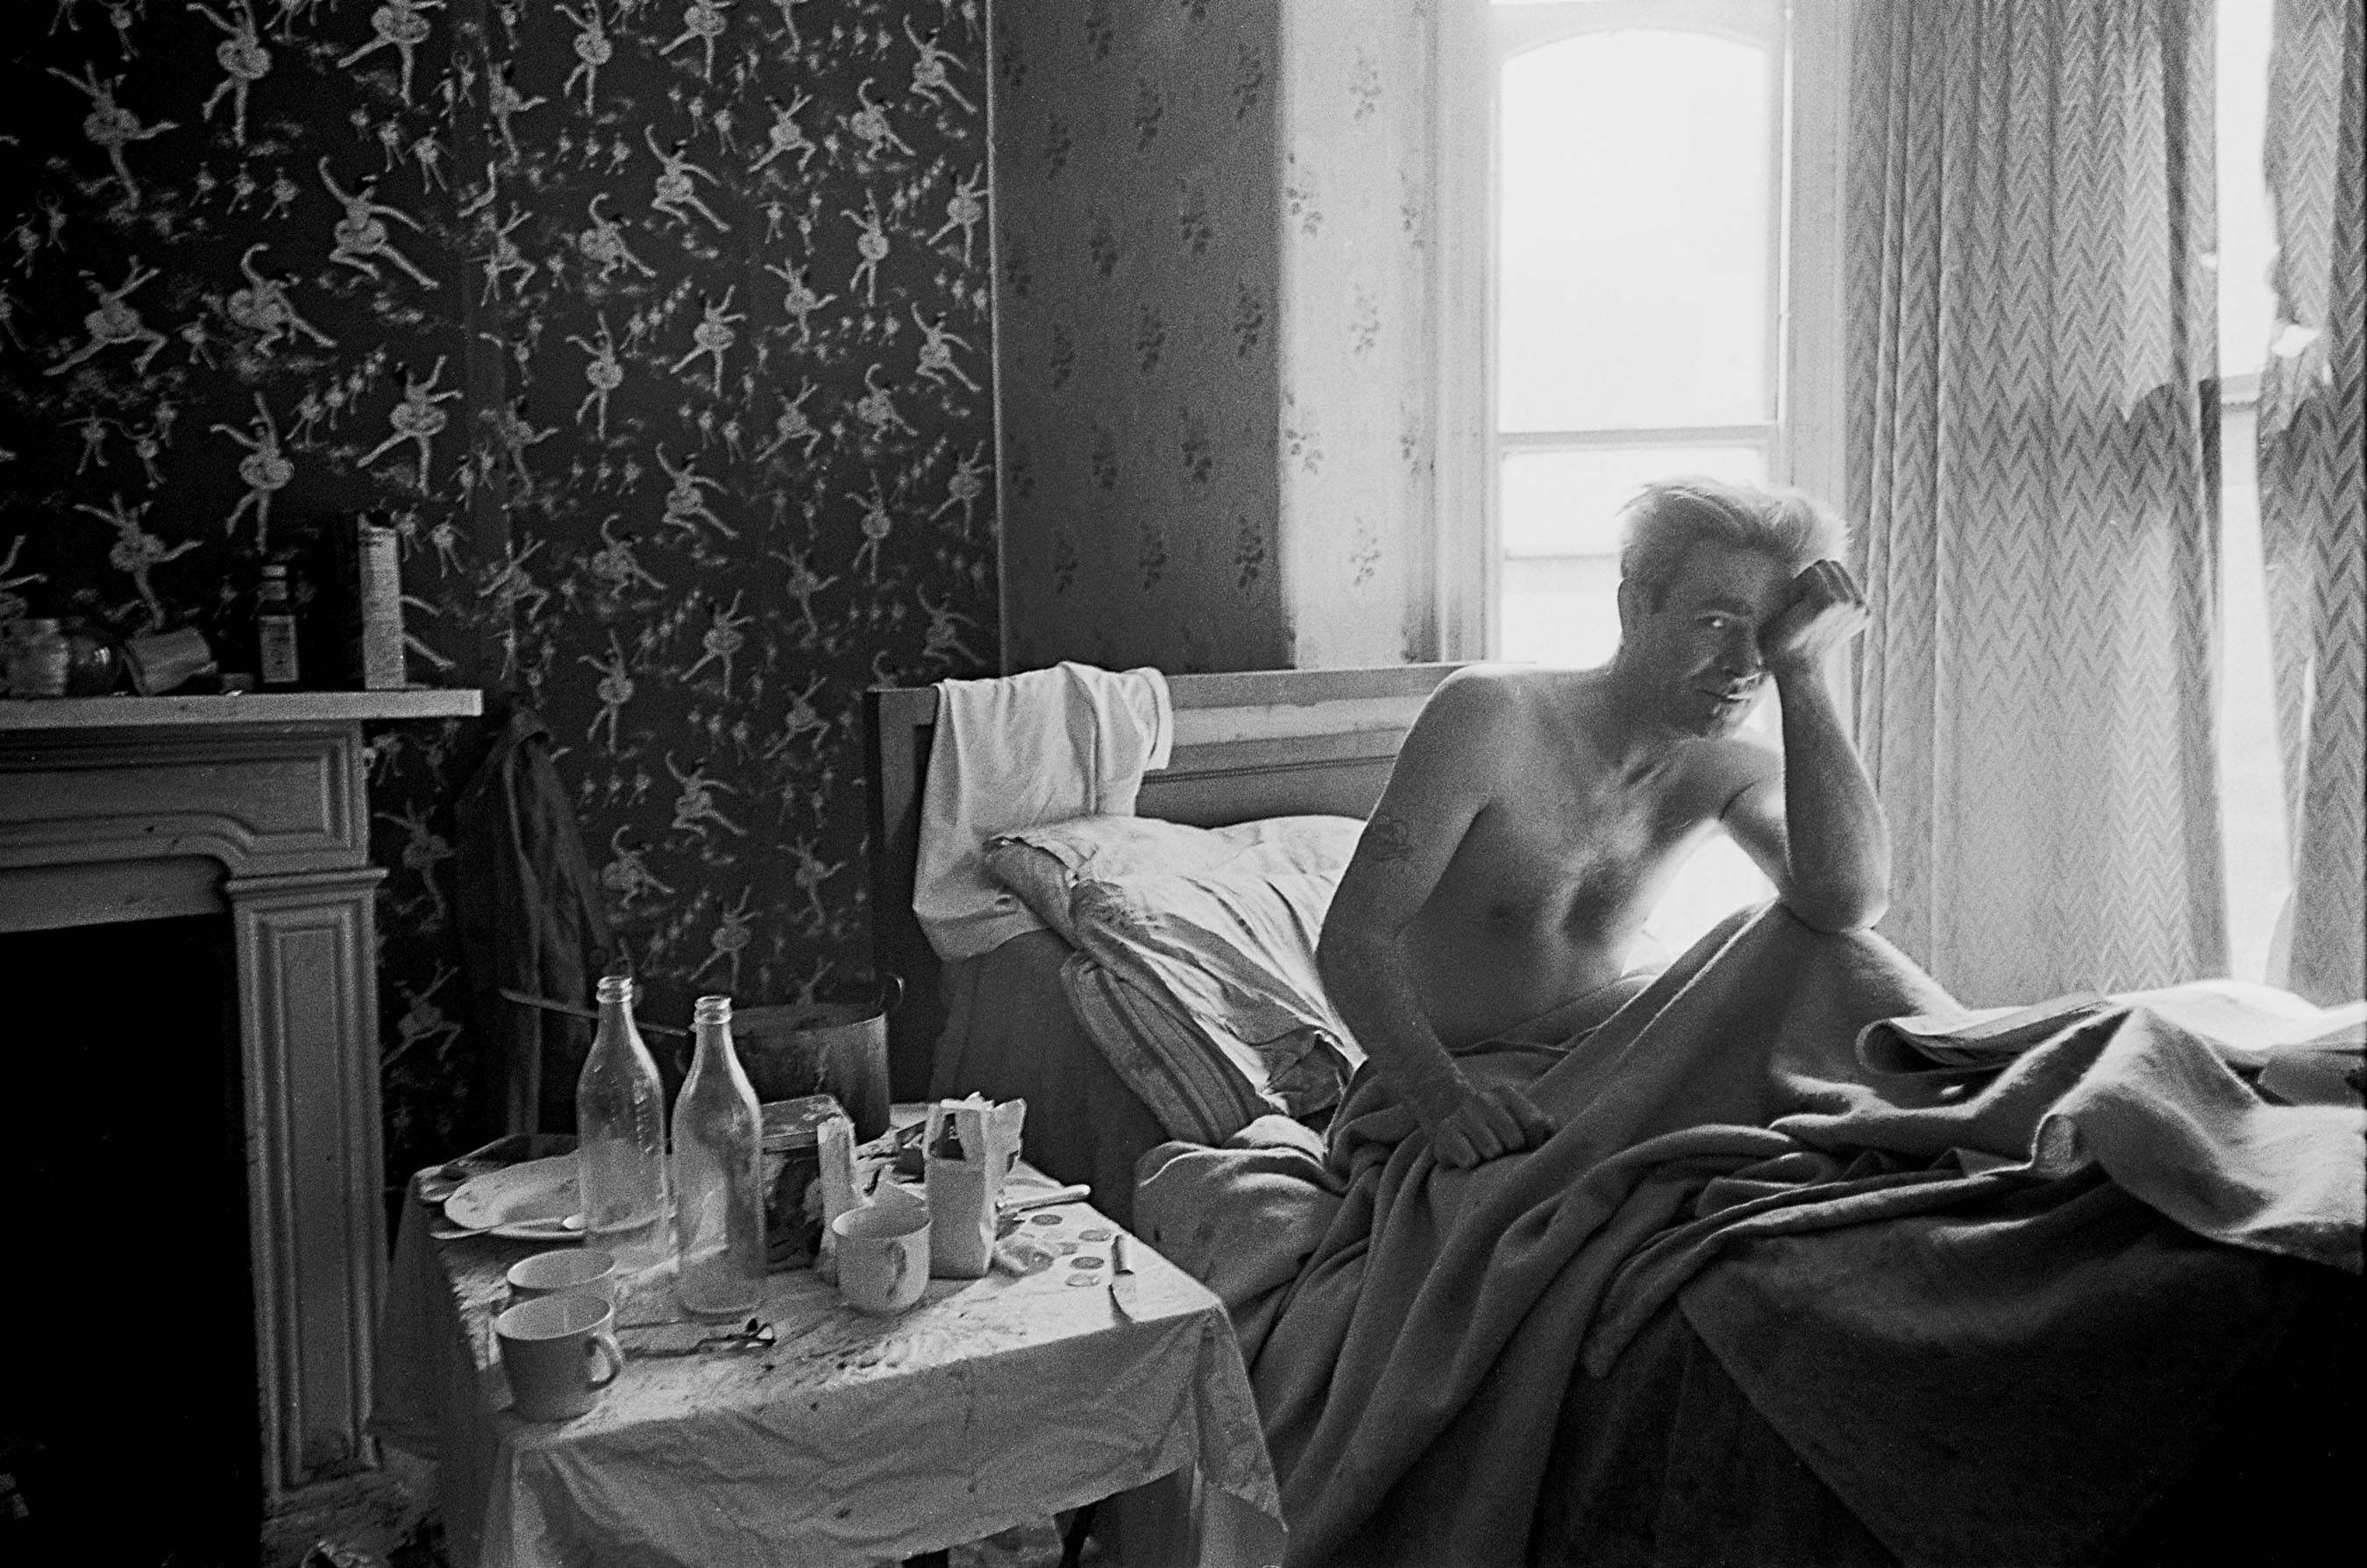 kitchen loans and bath st louis powerful photos of manchester slums 1969-72